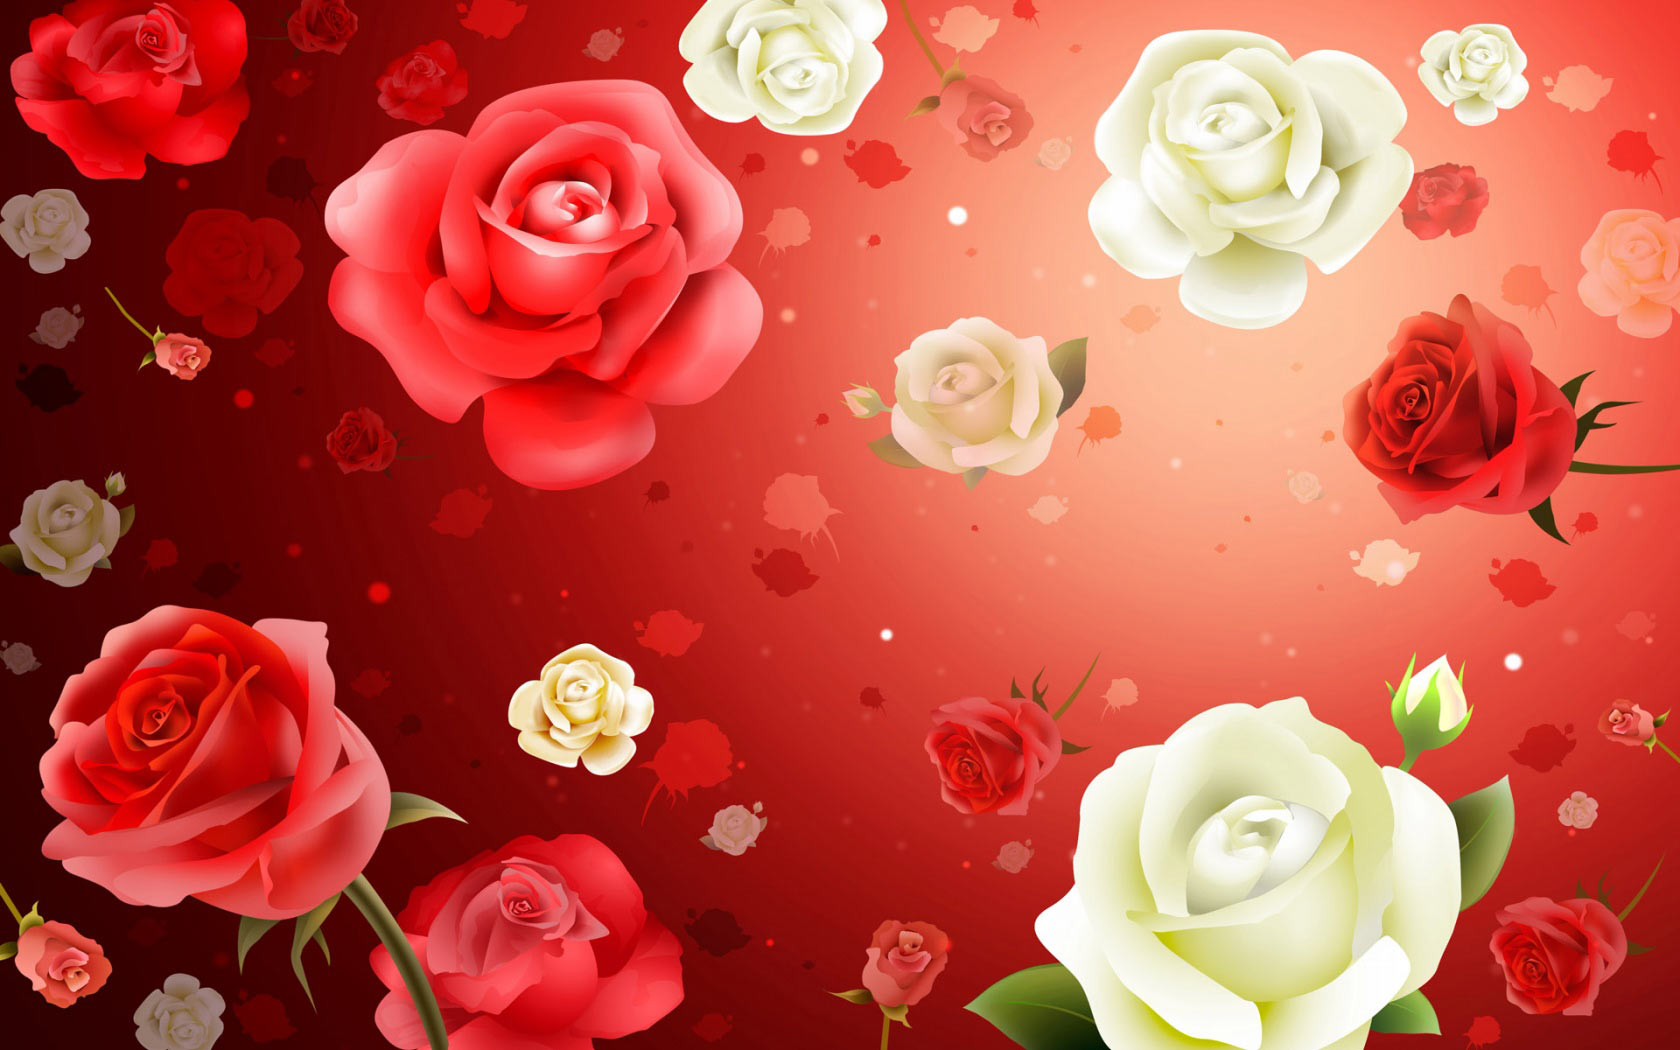 Download Roses flowers backgrounds Windows 7 Desktop Wallpaper in high 1680x1050